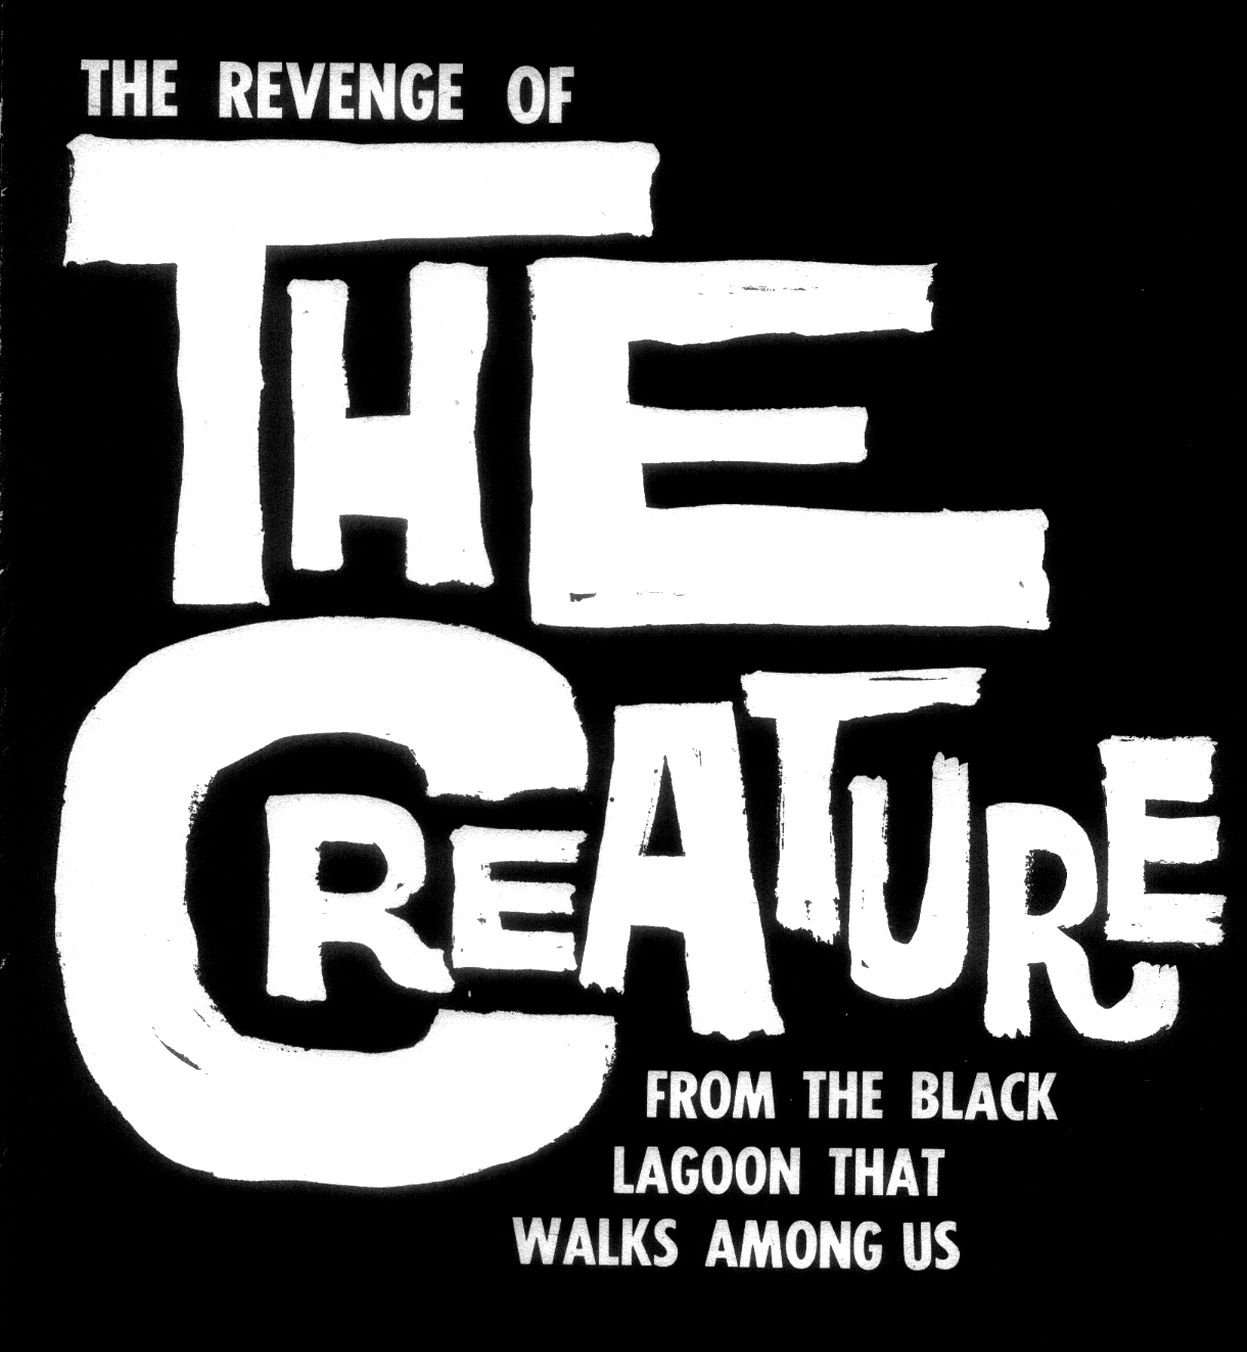 The revenge of the creature from the black lagoon that